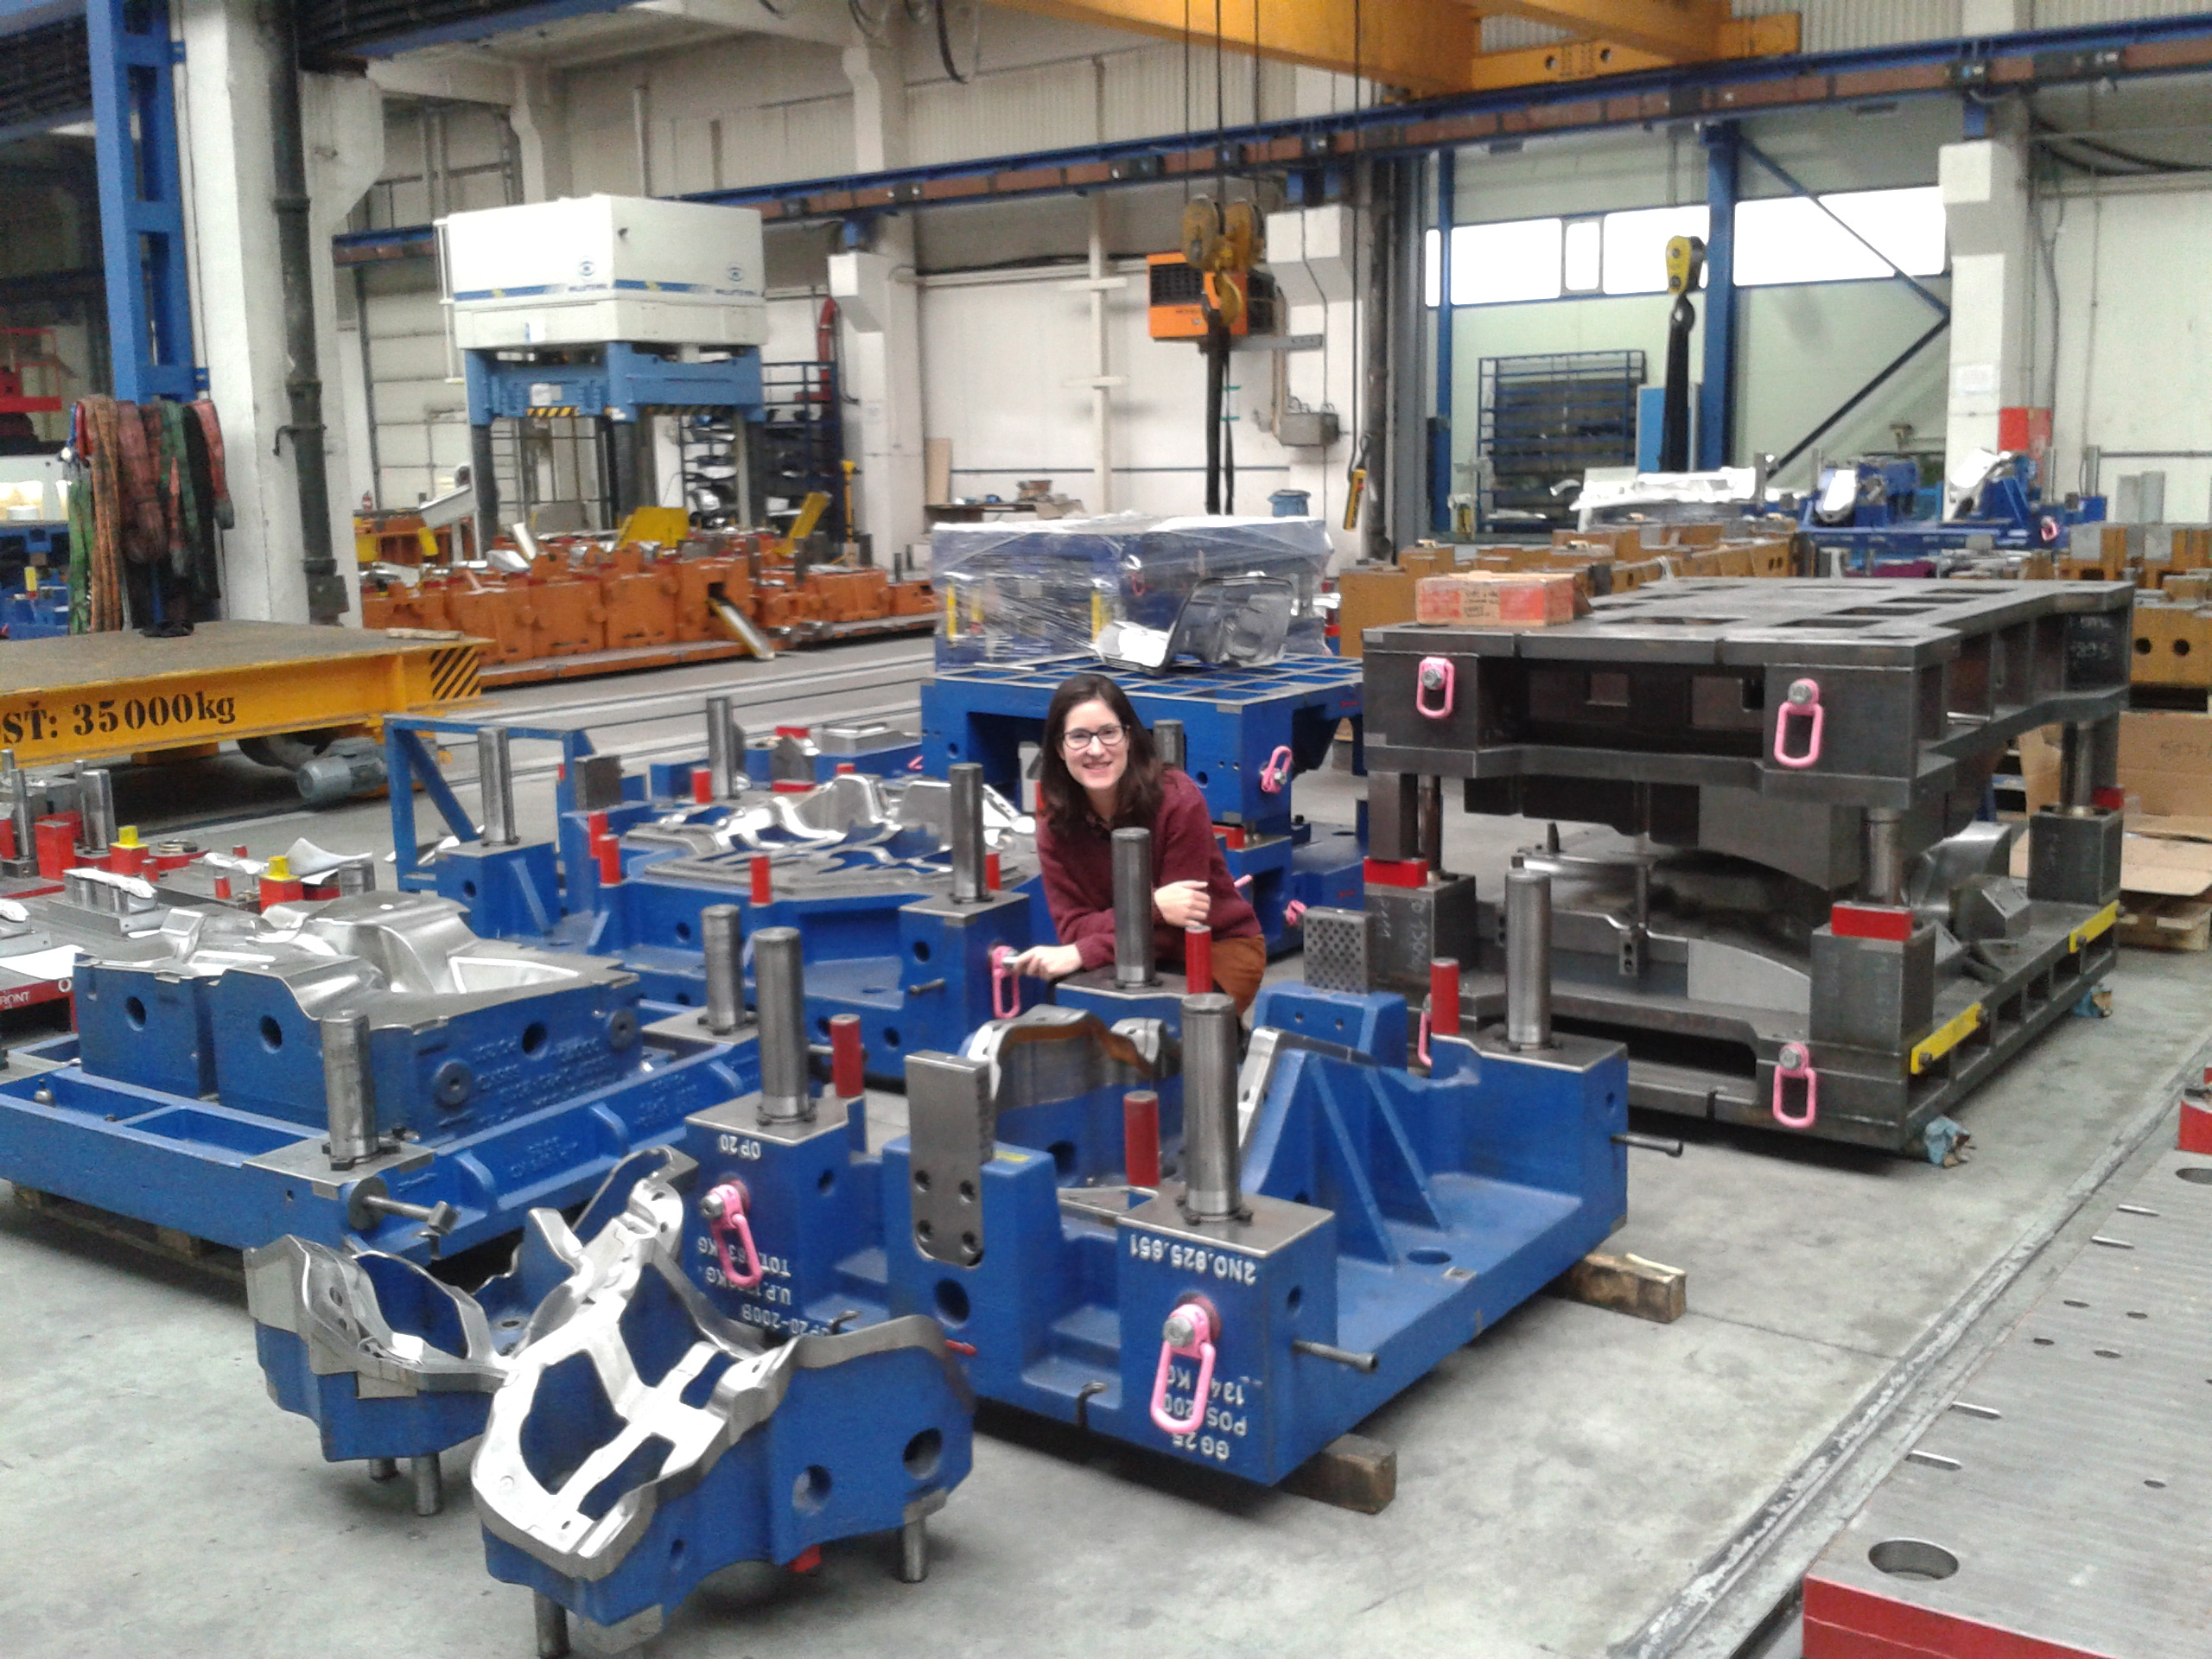 Sara, Tools Designer, Spain